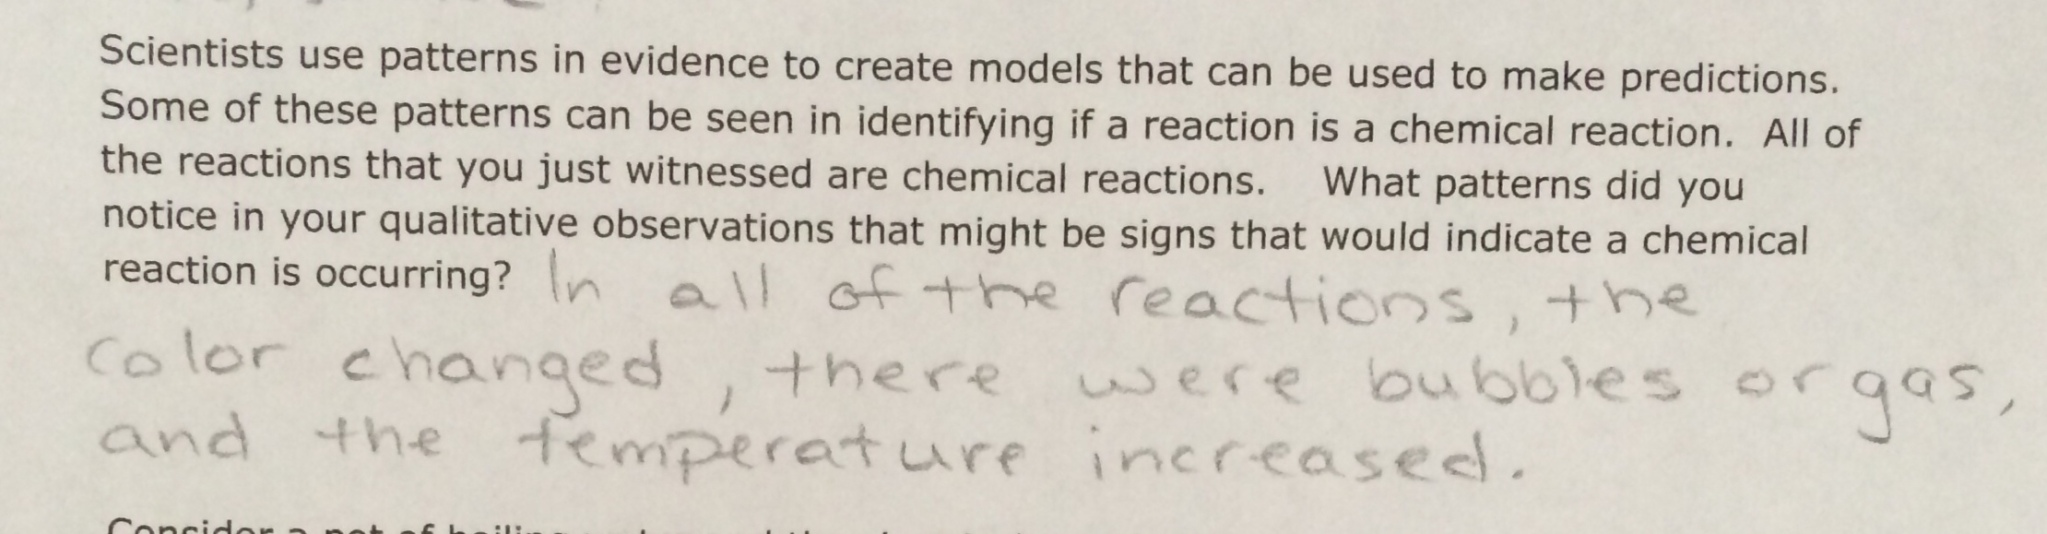 Lesson chemical reactions un notes betterlesson make sure students are not stating that getting hotter is a sign of a chemical reaction but simply that a change in temperature can indicate a chemical robcynllc Choice Image